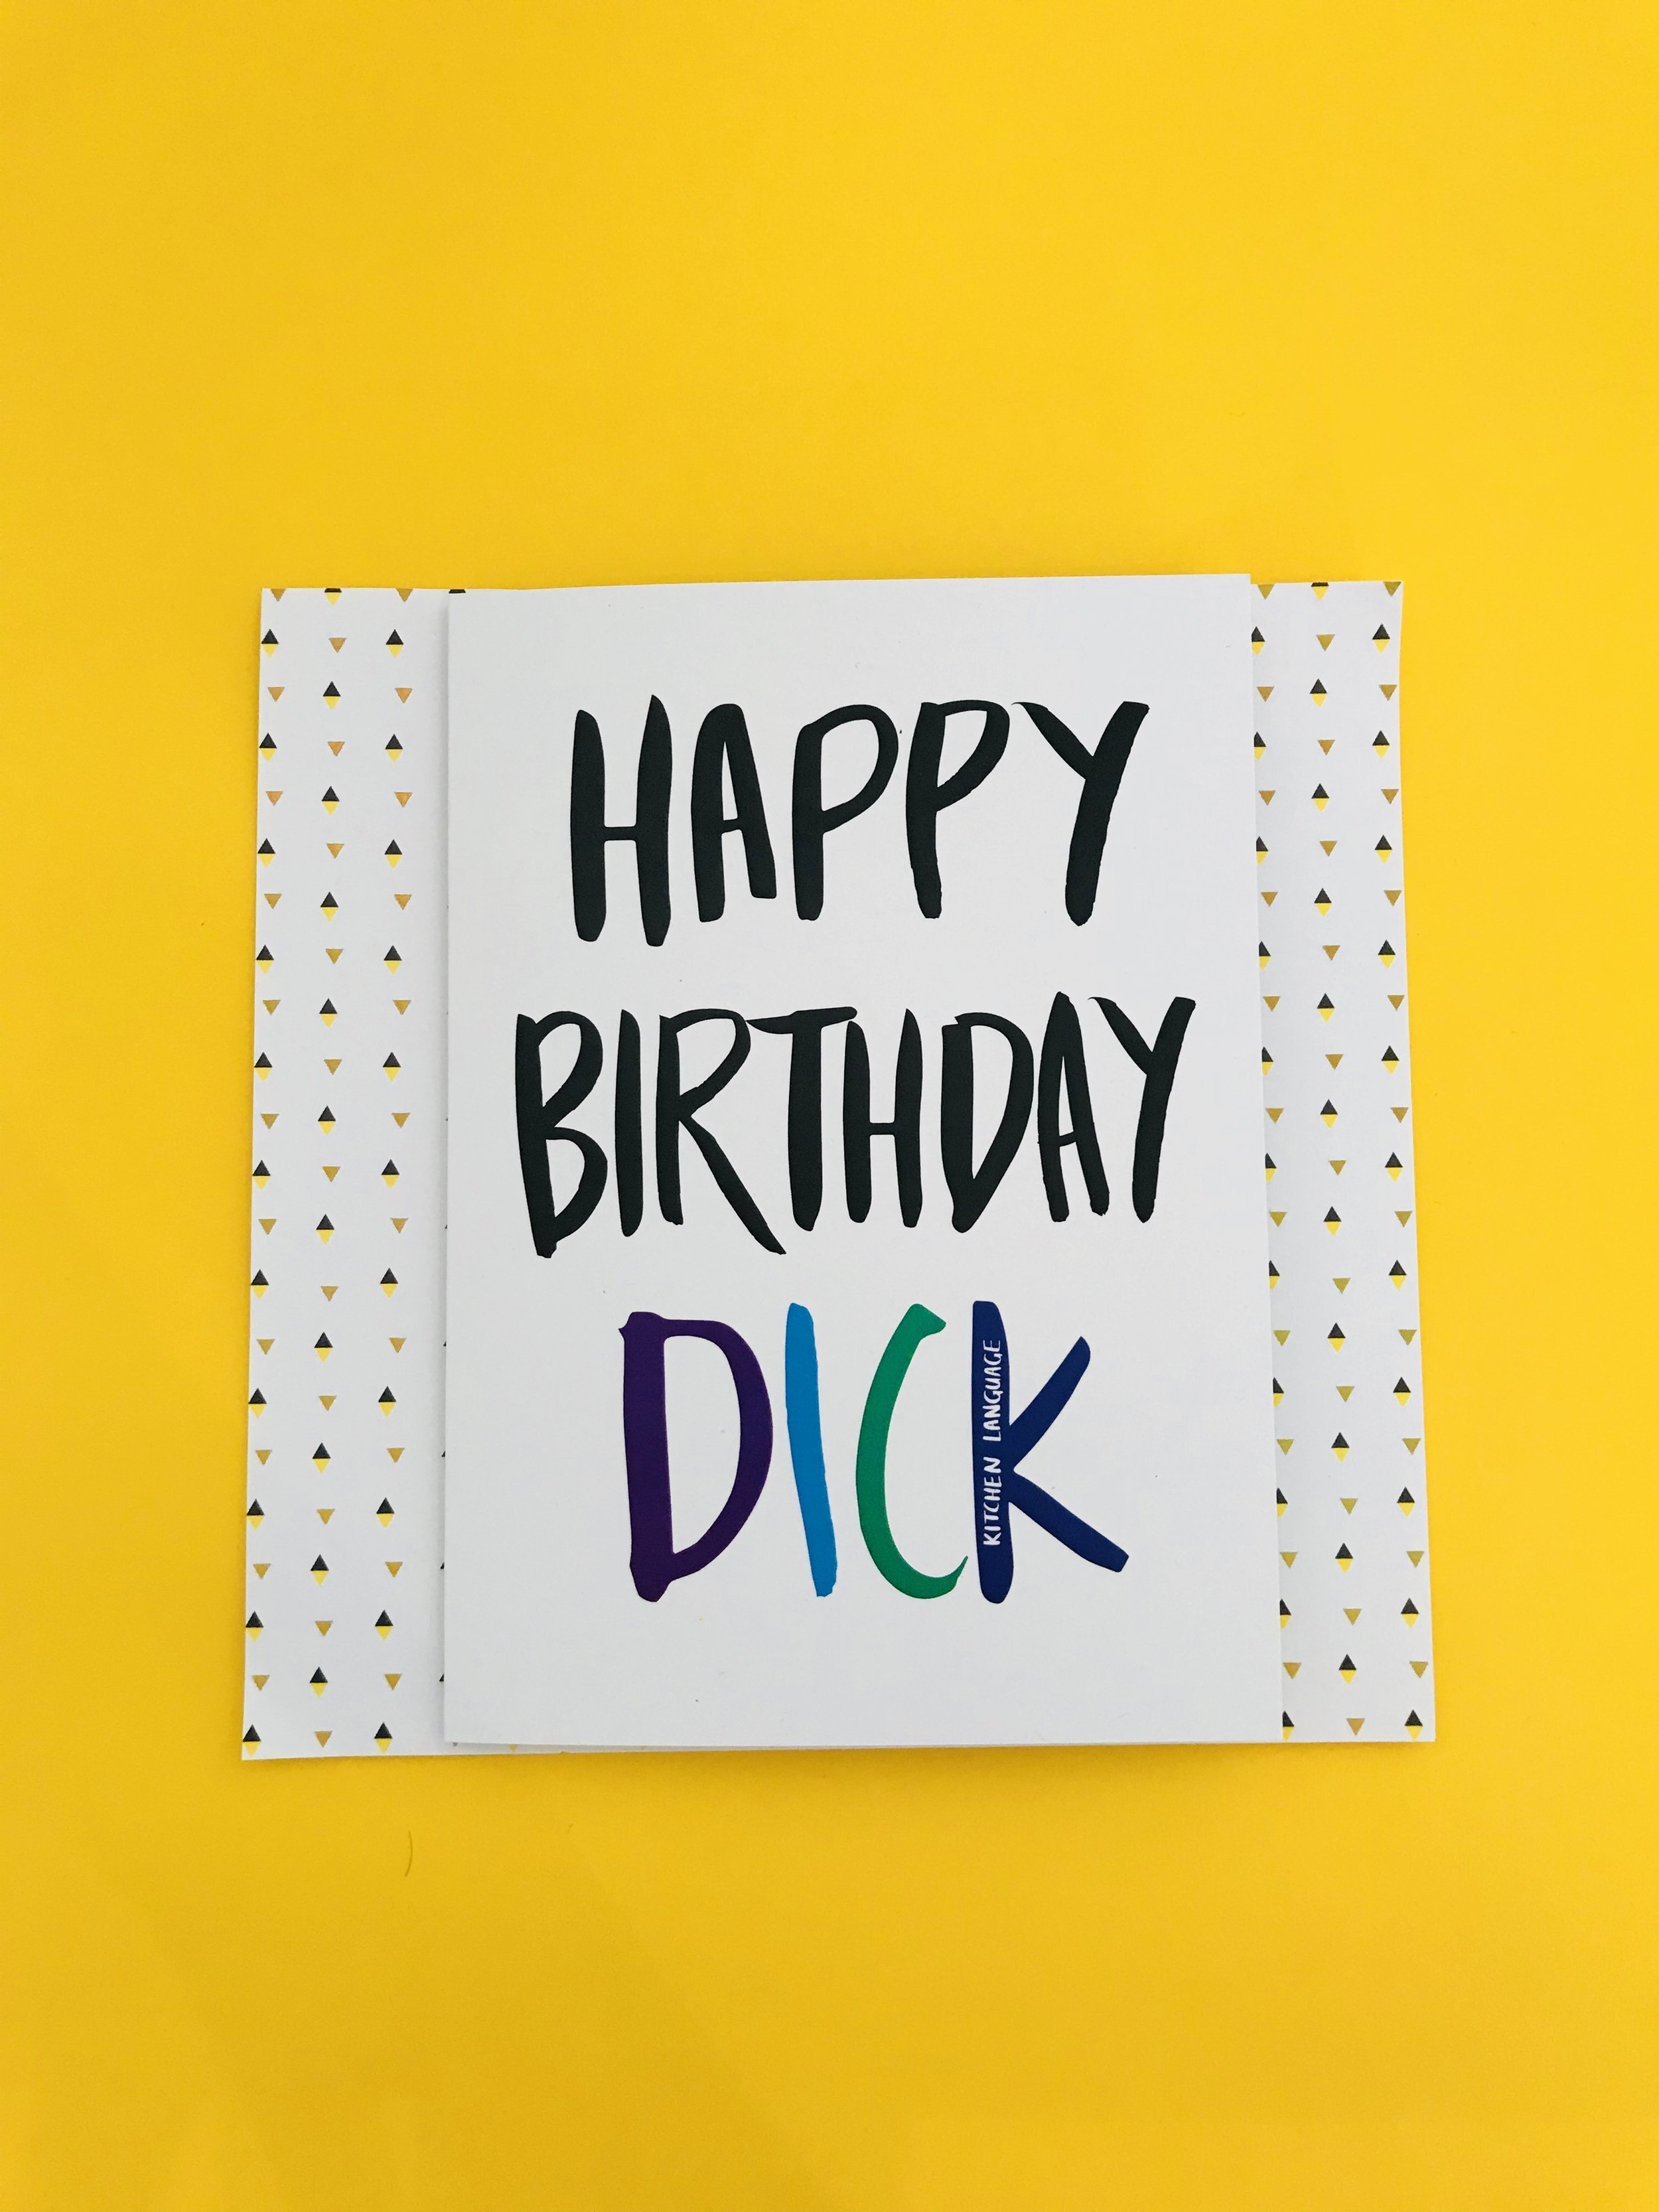 Happy birthday dick card kitchen language